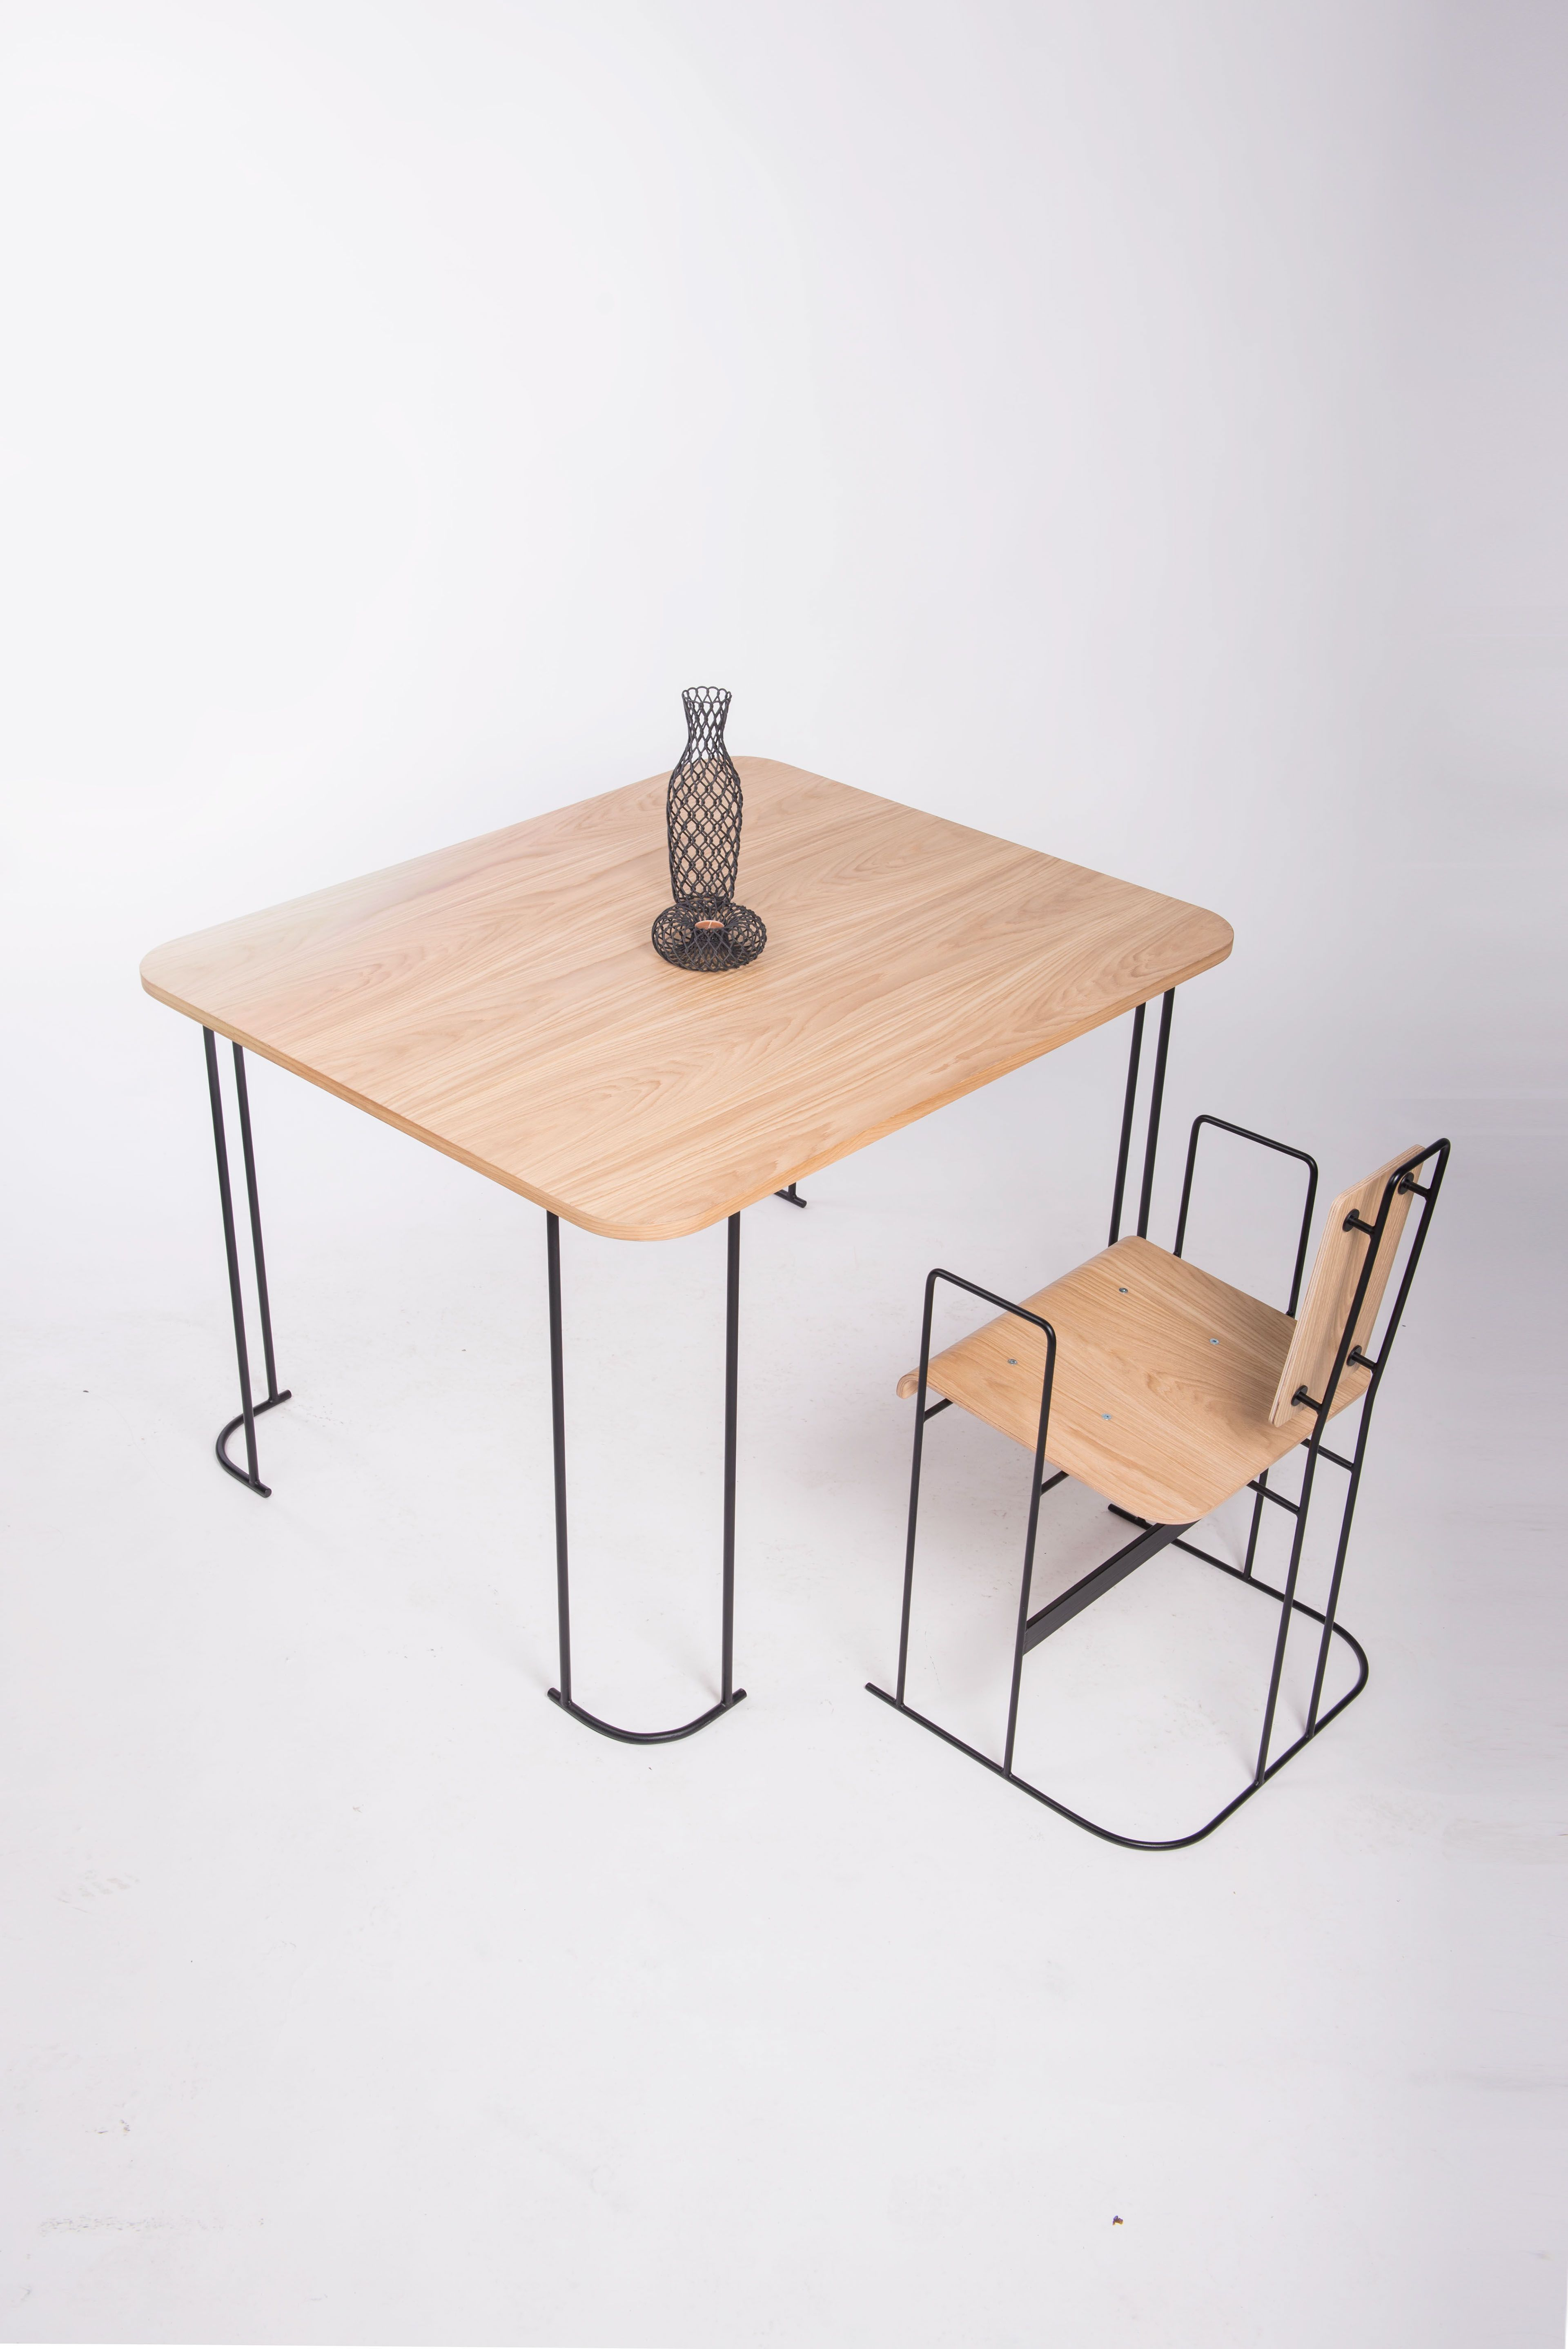 Furniture designer is influenced by Japan and Scandinavia • F U R N I T U R E • D E S I G N • Pinterest